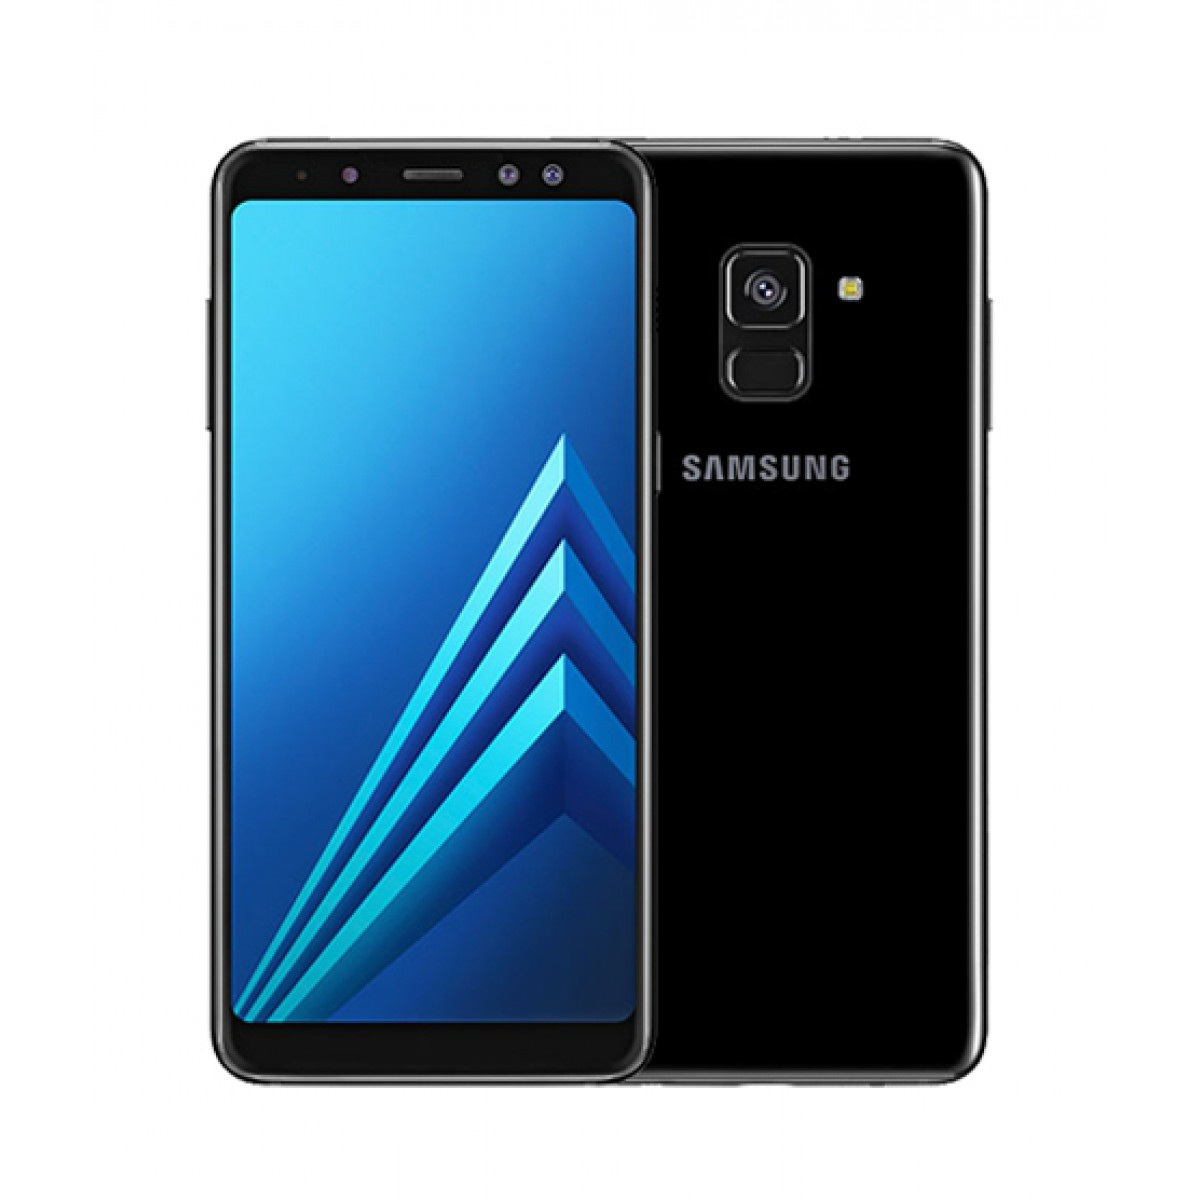 samsung galaxy a8 2018 price in pakistan home shopping. Black Bedroom Furniture Sets. Home Design Ideas